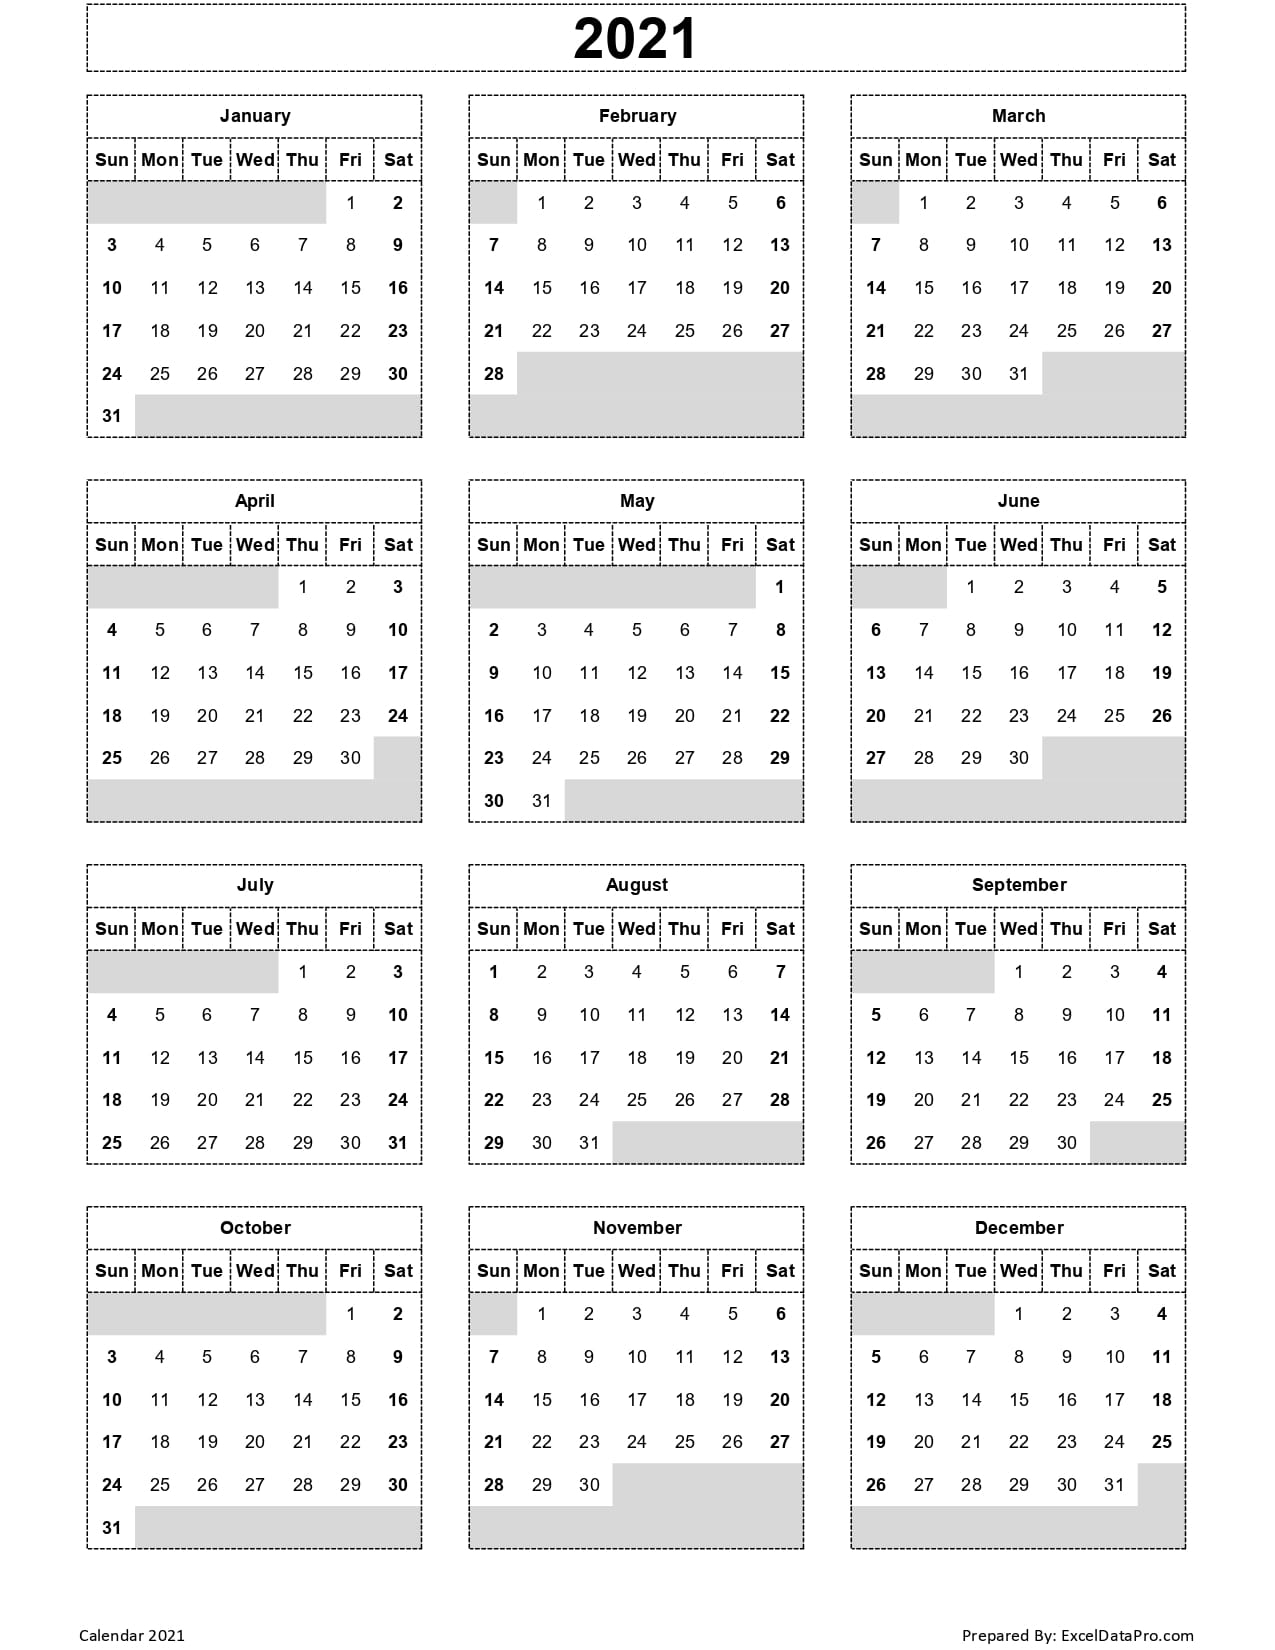 Download 2021 Yearly Calendar (Sun Start) Excel Template intended for Fill In Calendar Printable 2021